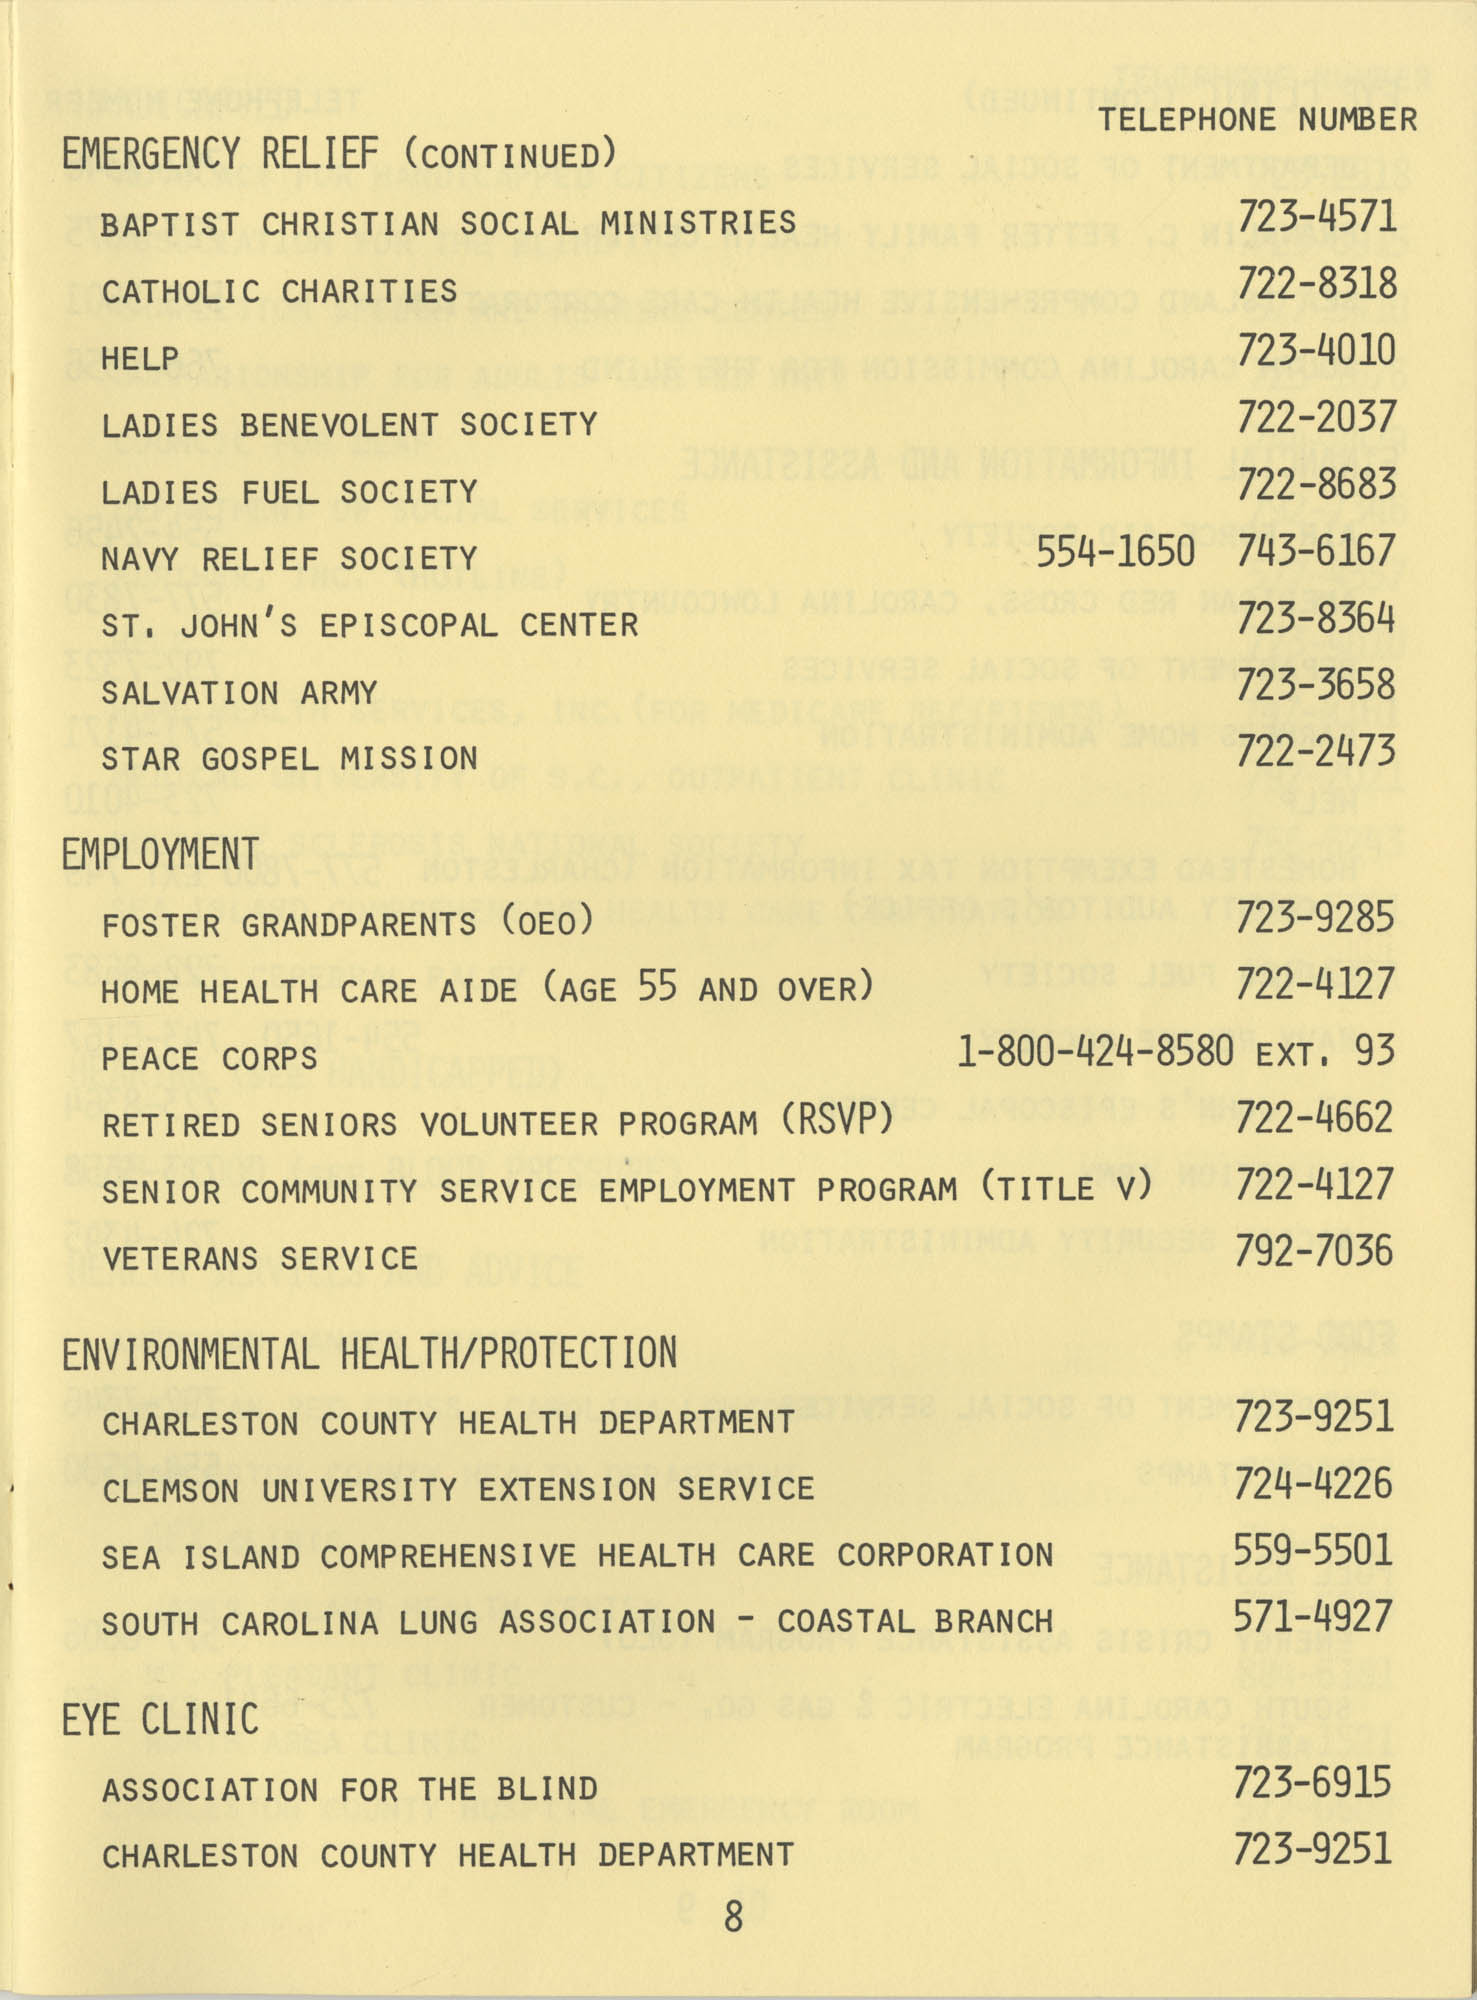 Telephone Line to Care for the Elderly, Page 8